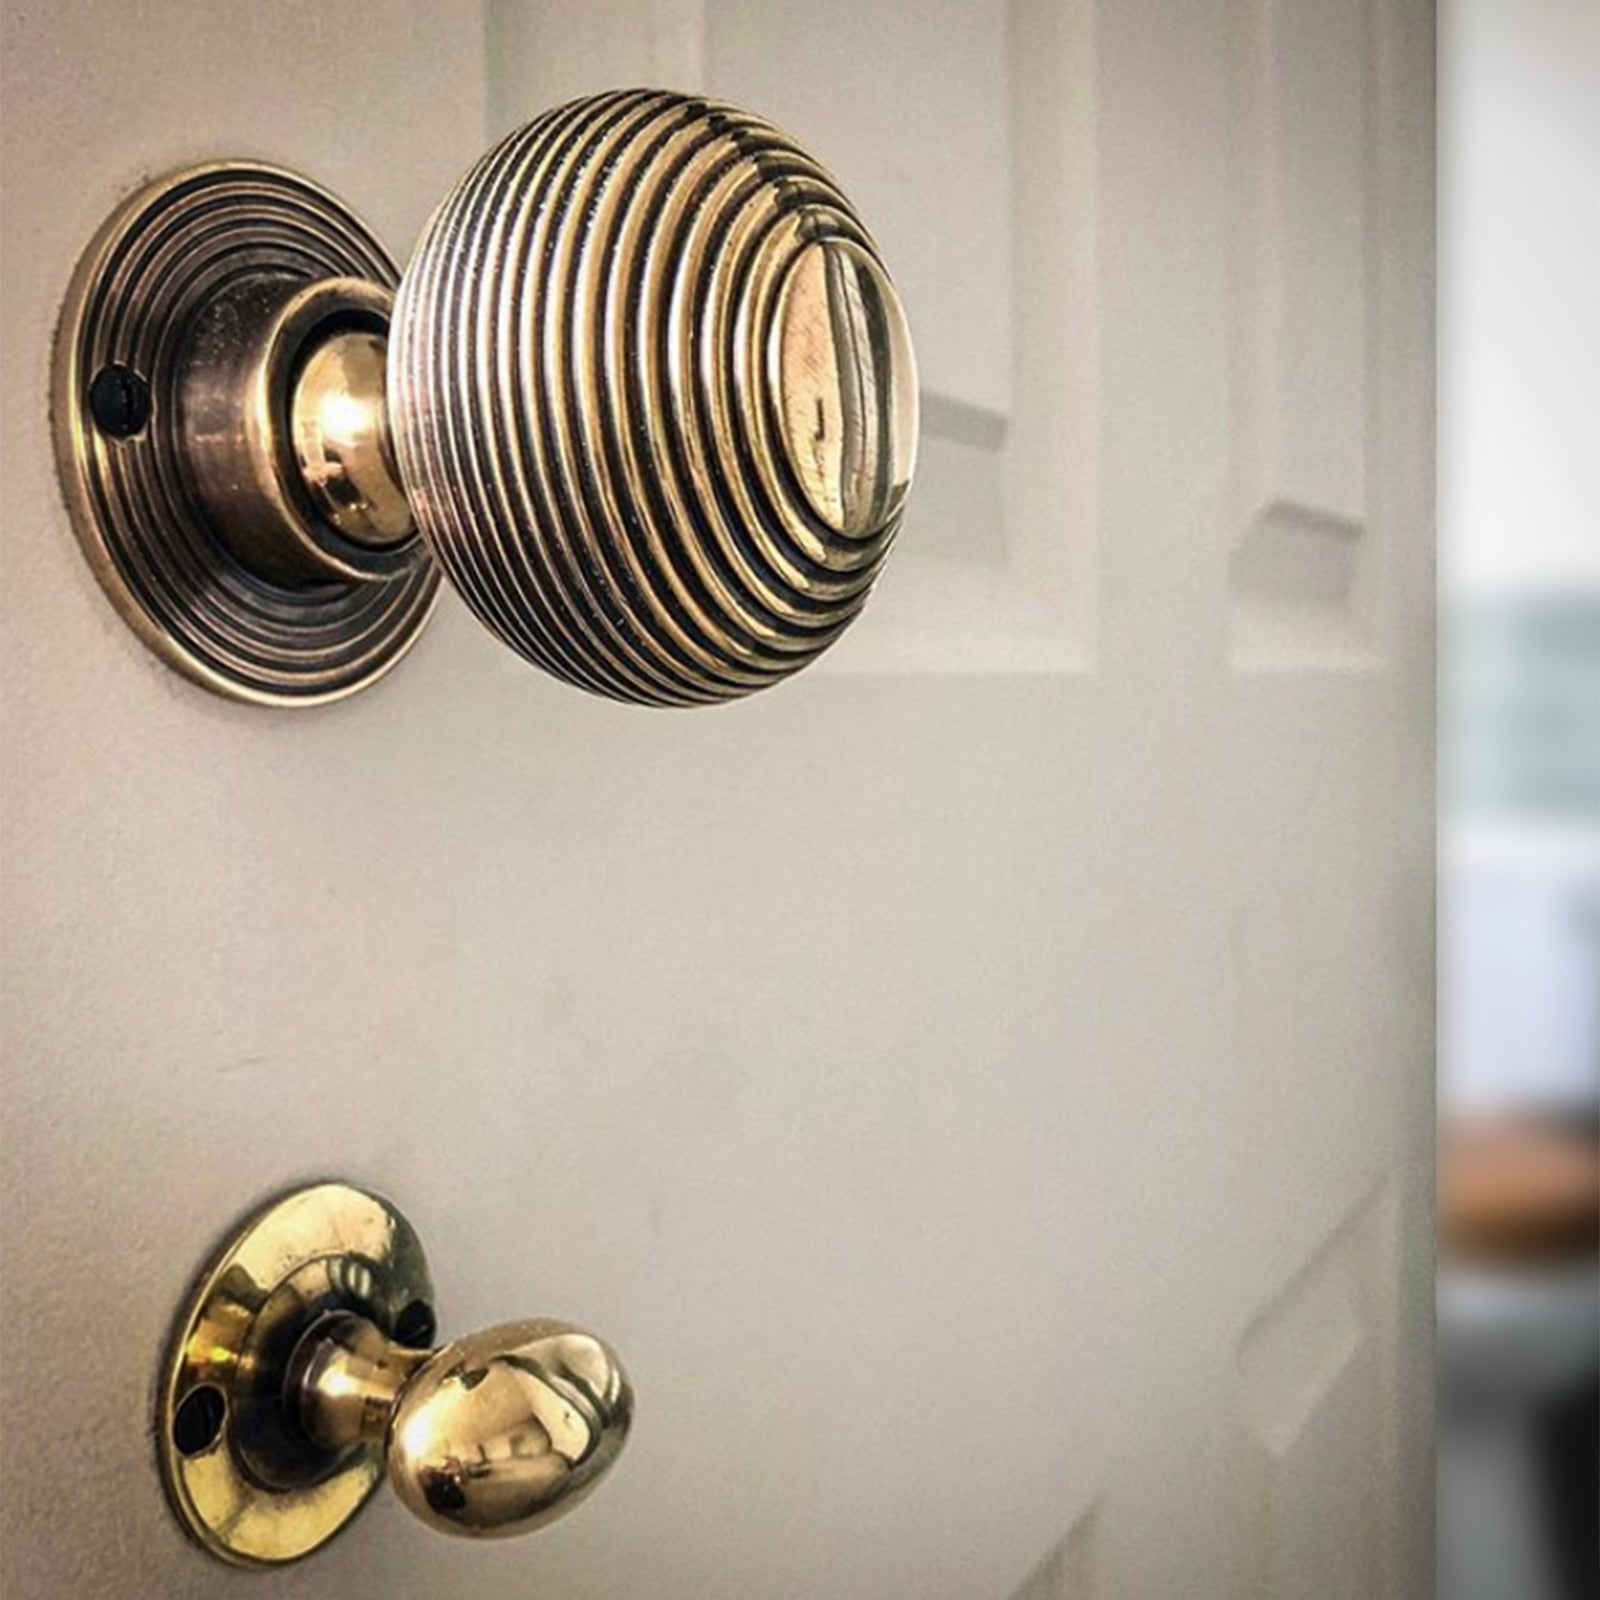 Bathroom door lock with door knob SHOW